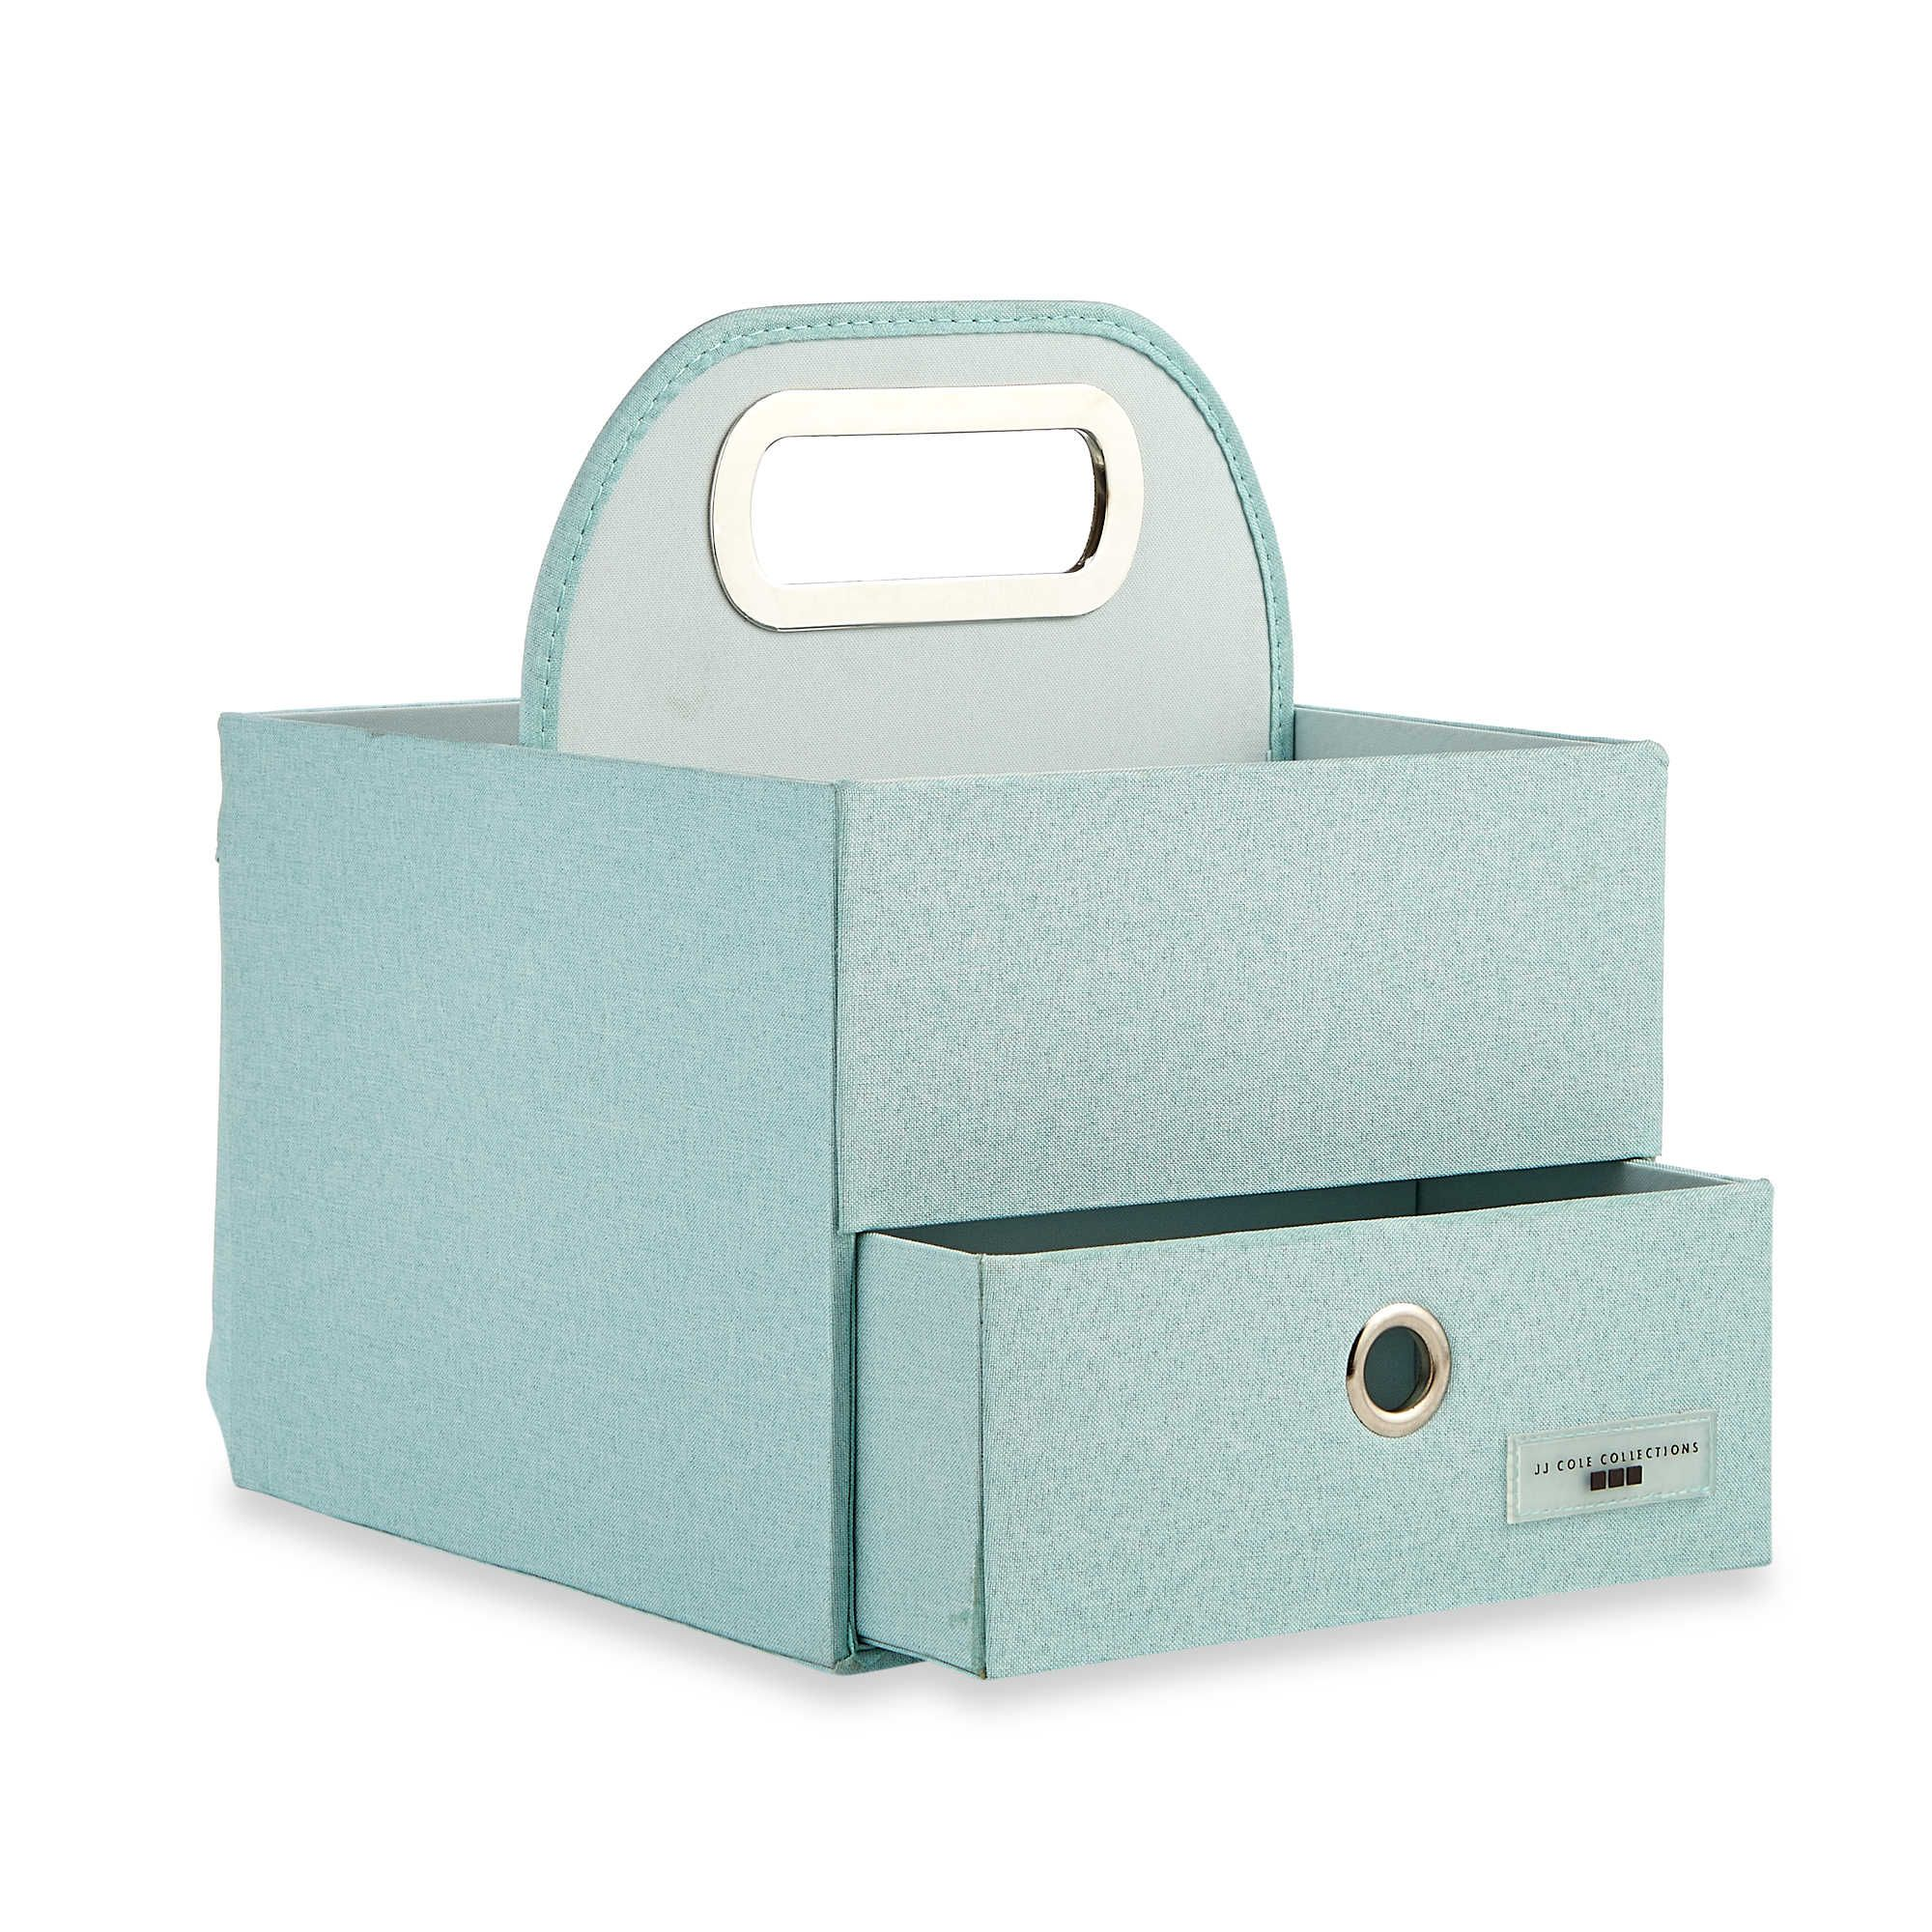 9 Best Diaper Caddies For Your Baby in 2018 - Diaper Caddies and ...